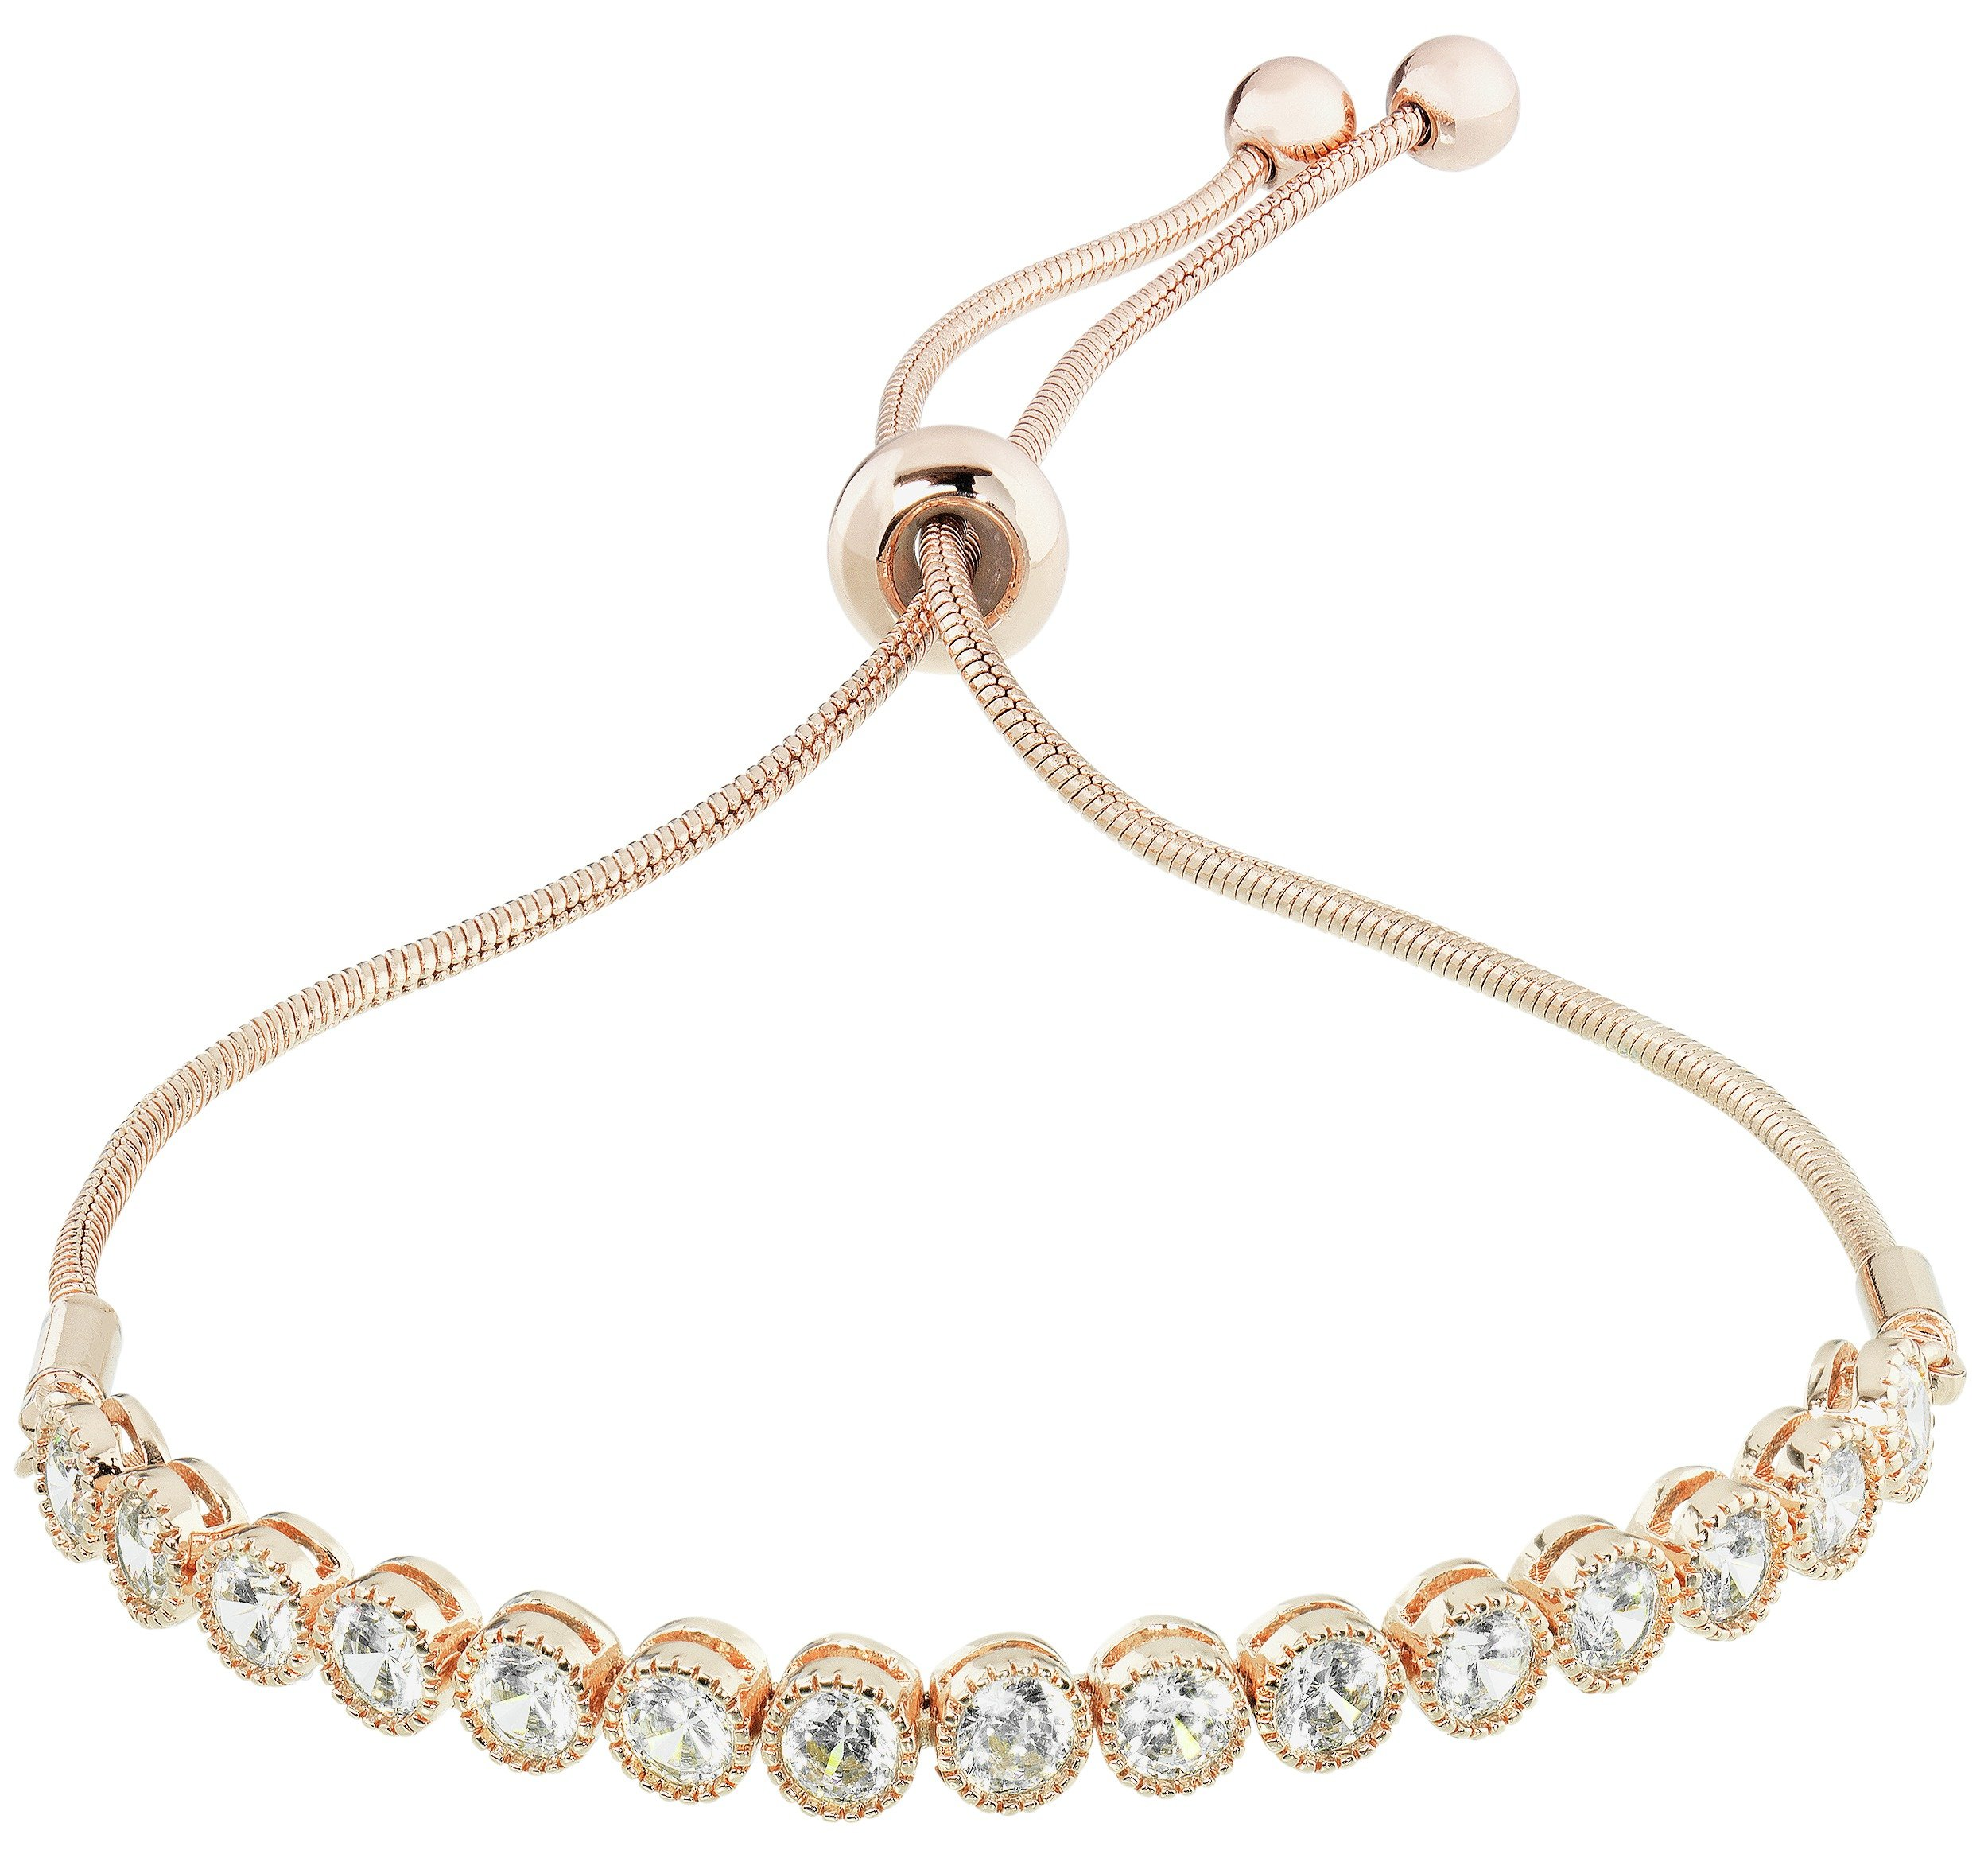 Image of Amelia Grace 18ct Rose Gold Plated CZ Snake Chain Bracelet